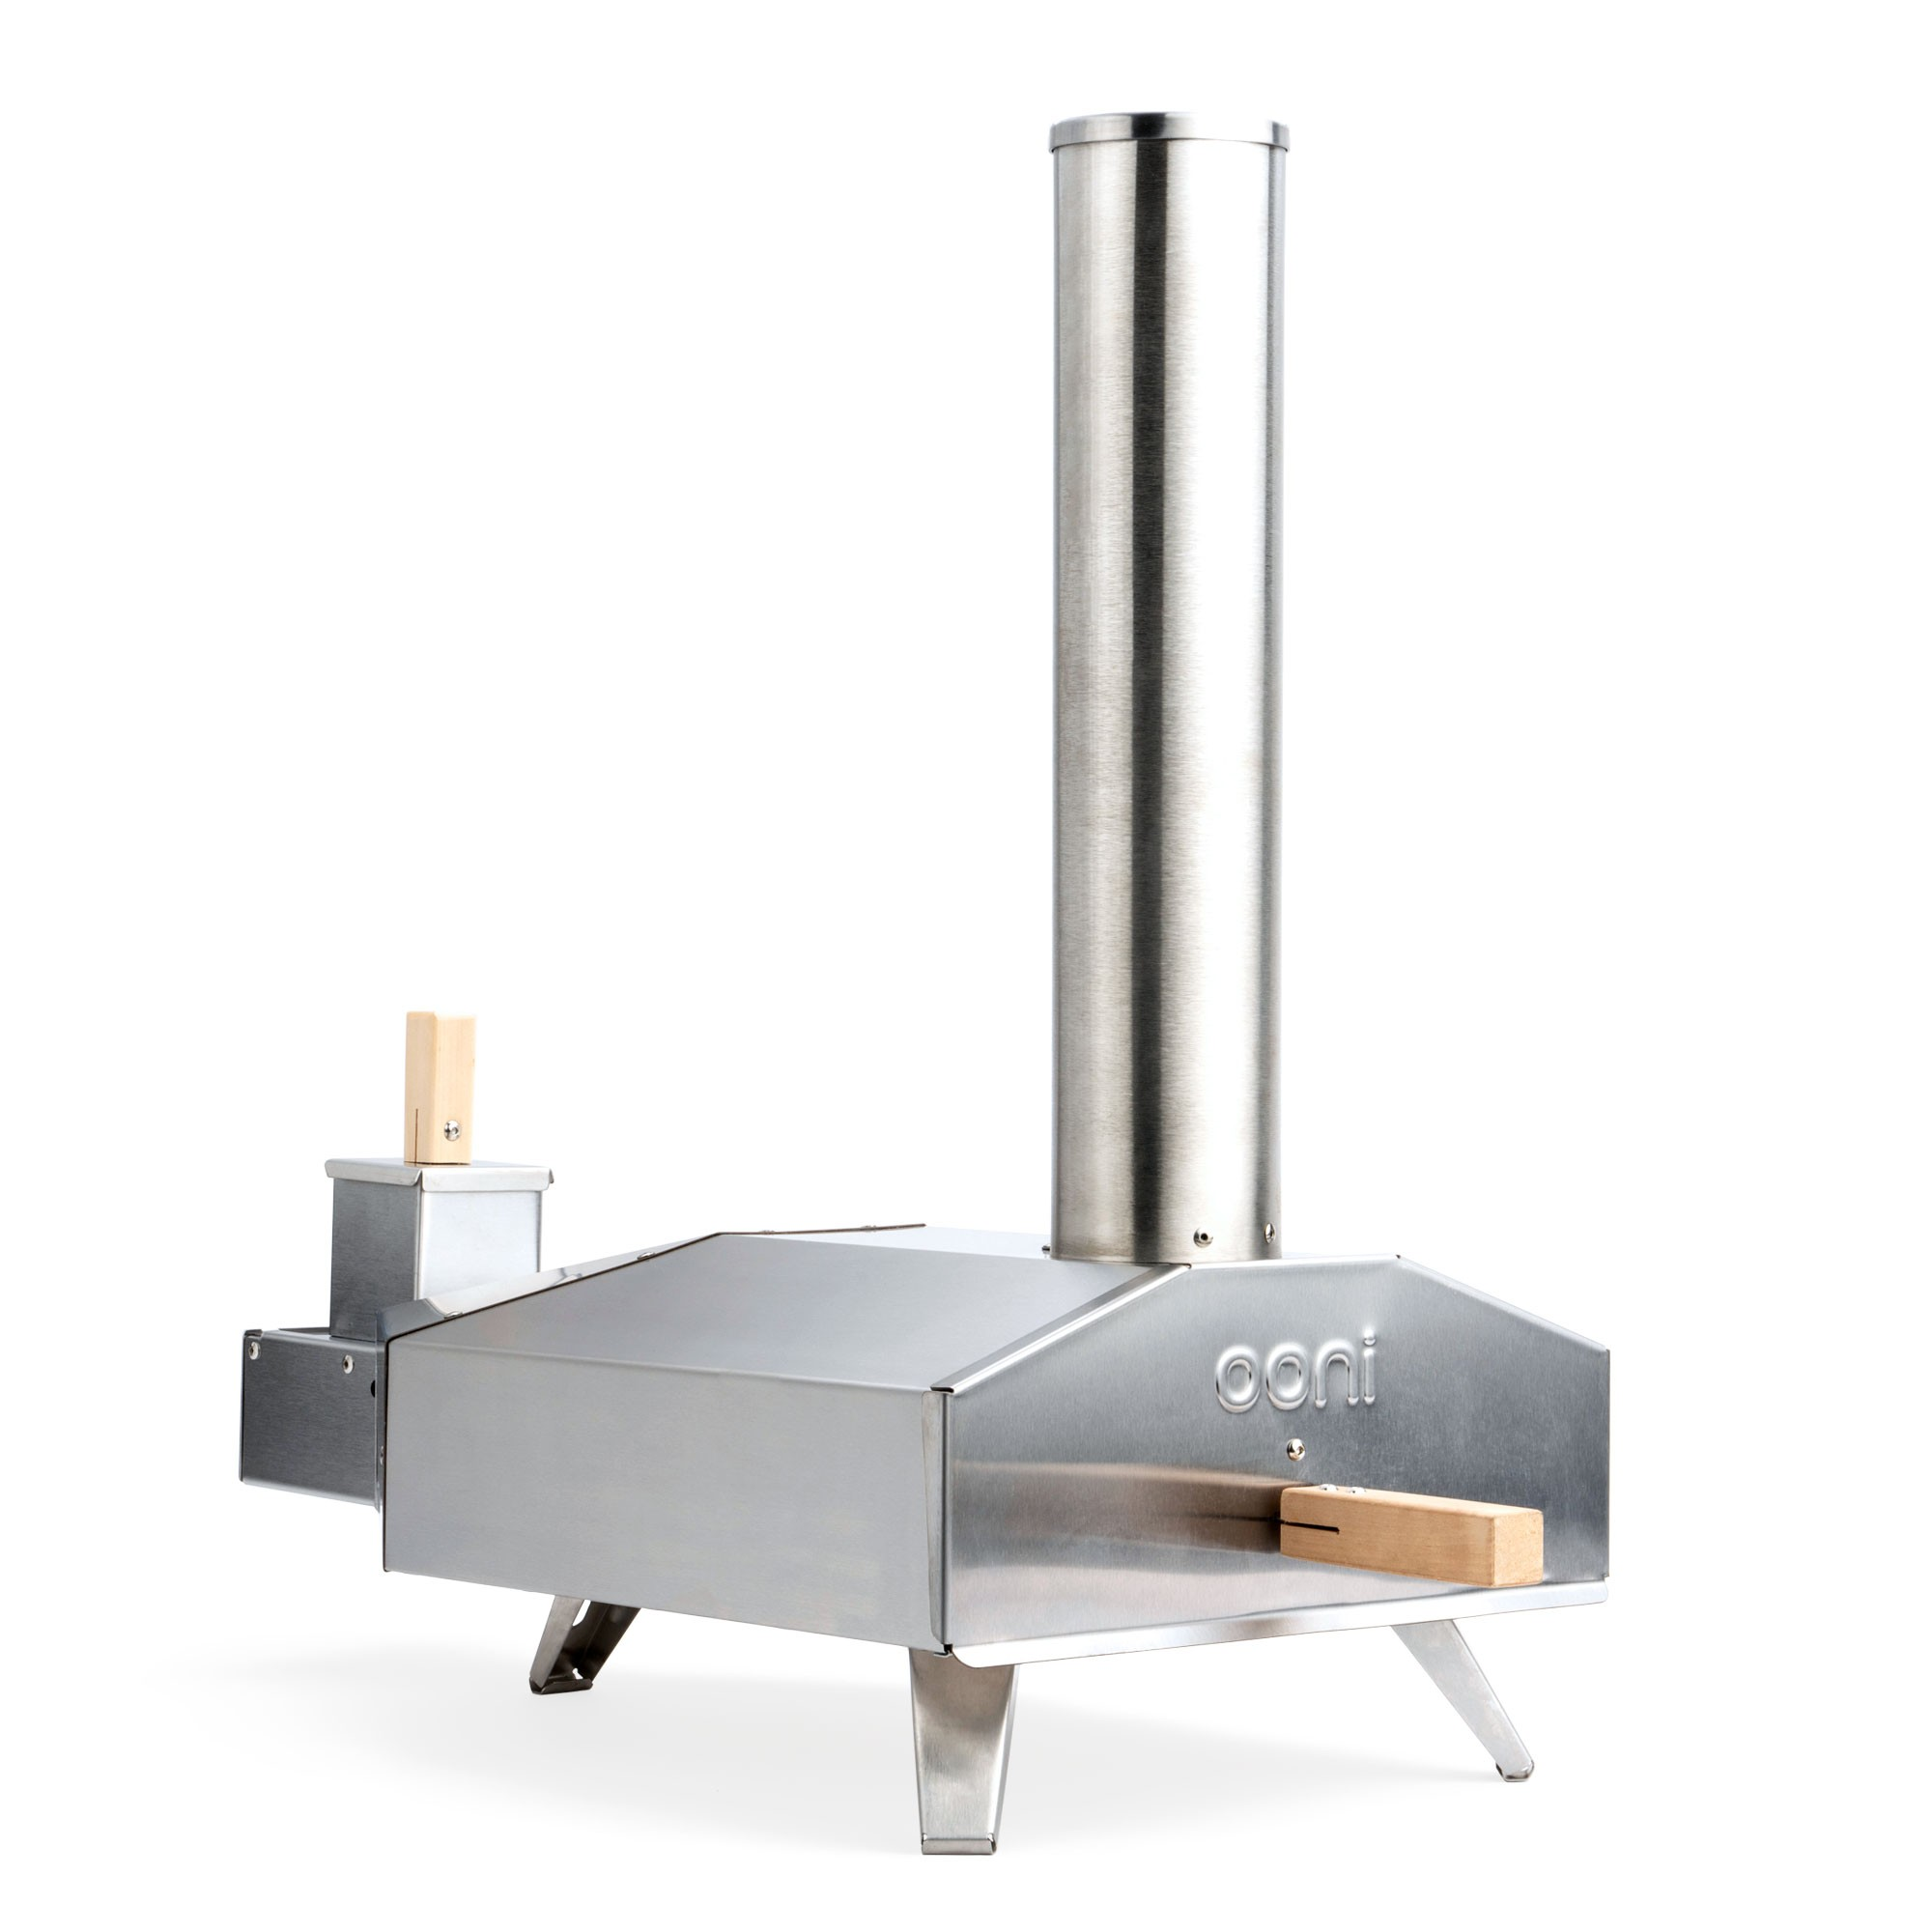 Ooni 3 Wood-Fired Portable Pizza Oven